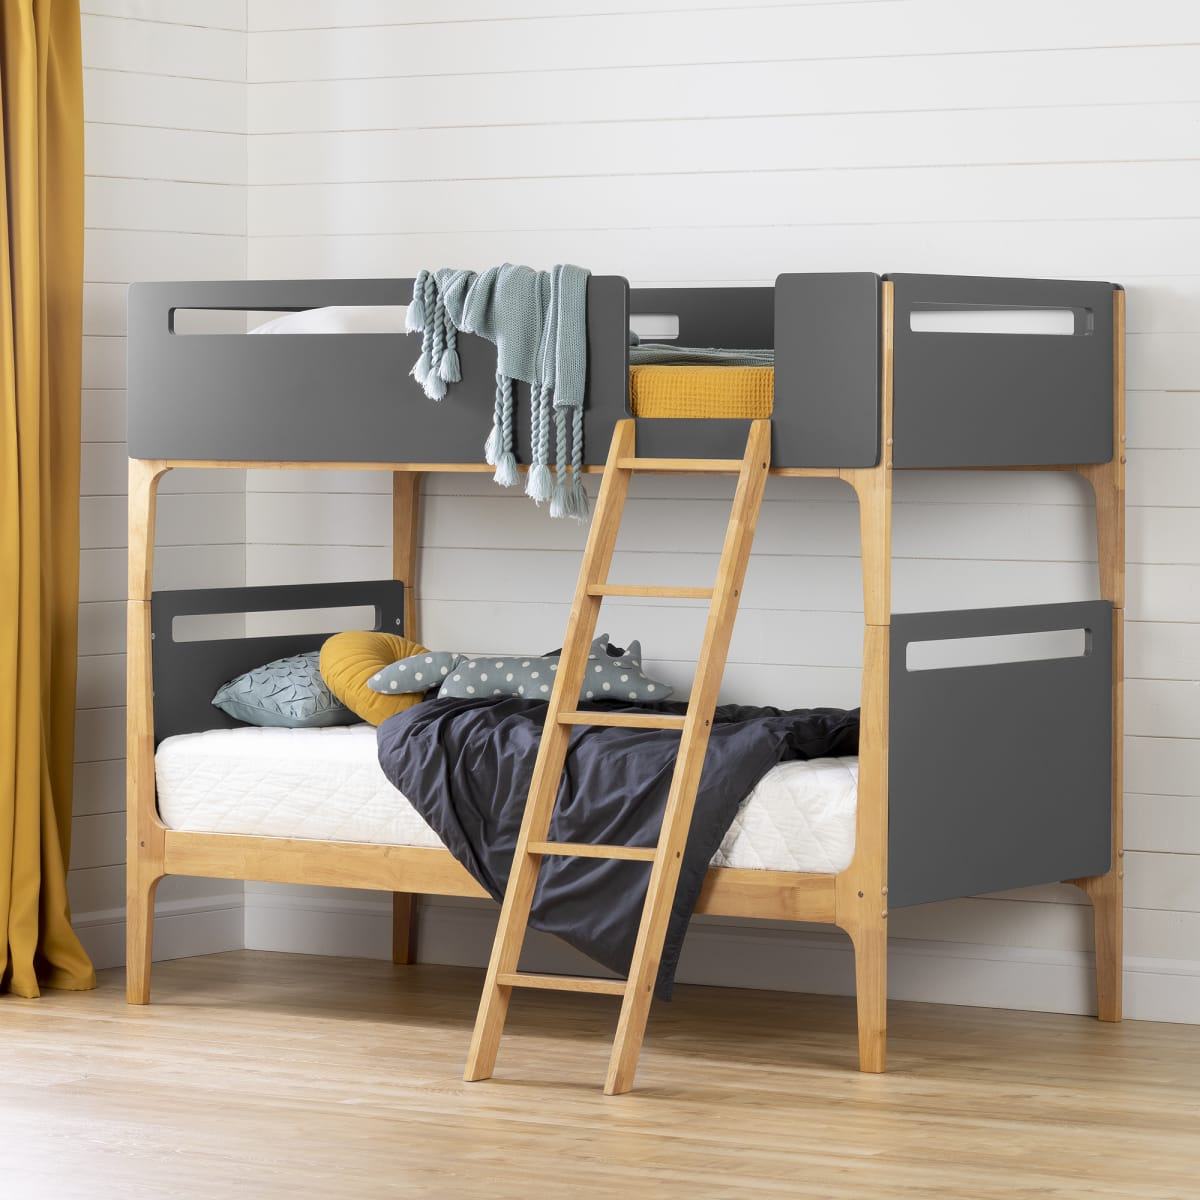 Bebble Modern Bunk Beds Bed Kids Bedroom Baby And Kids Products South Shore Furniture Us Furniture For Sale Designed And Manufactured In North America